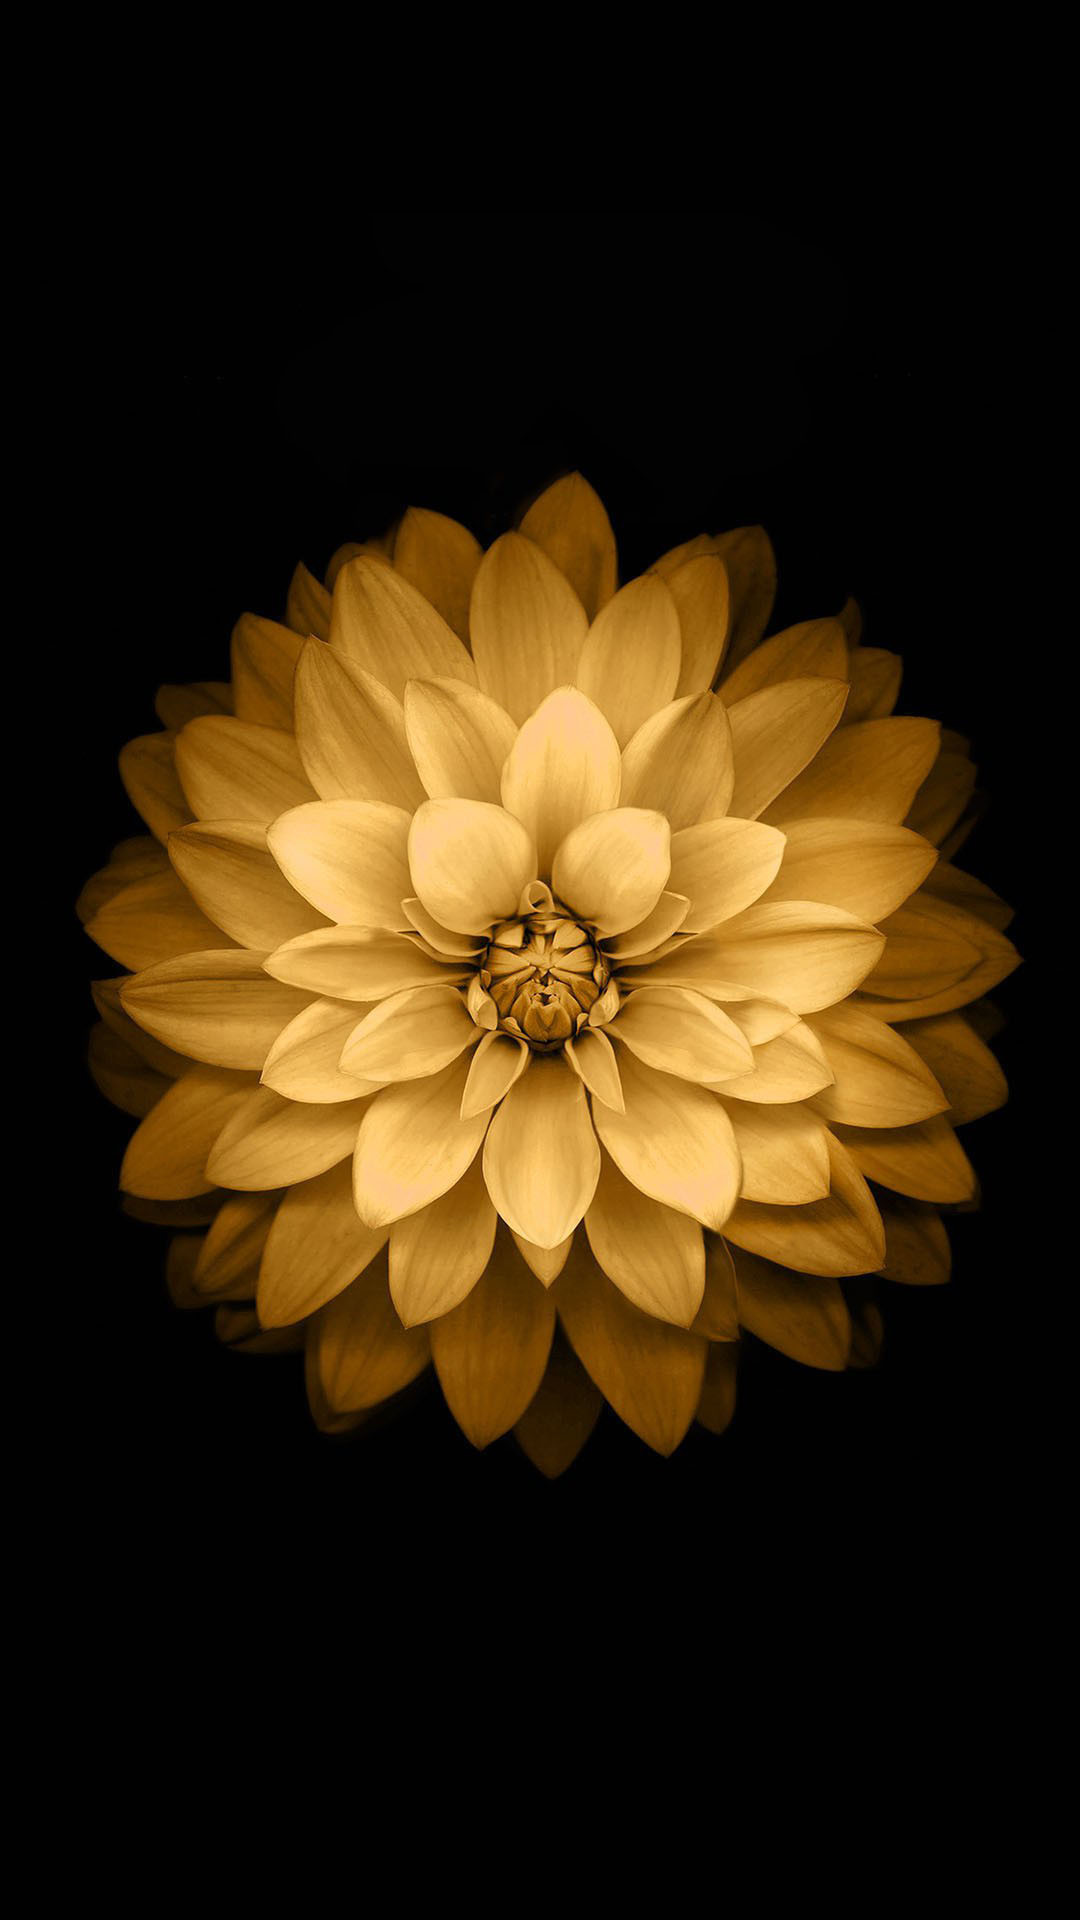 Download Golden Lotus Flower iOS Wallpaper